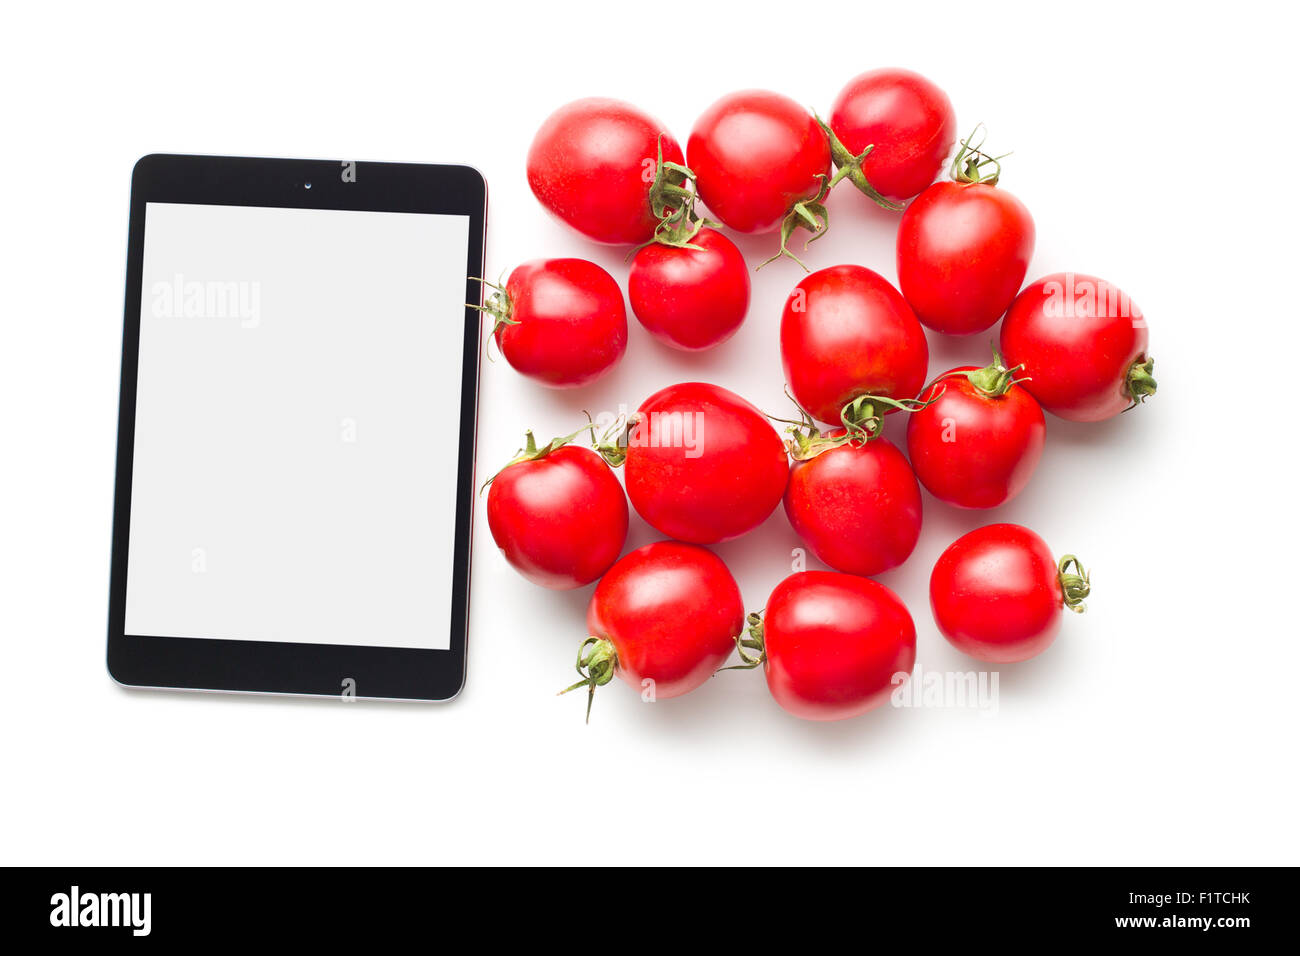 computer tablet and tomatoes on white background - Stock Image